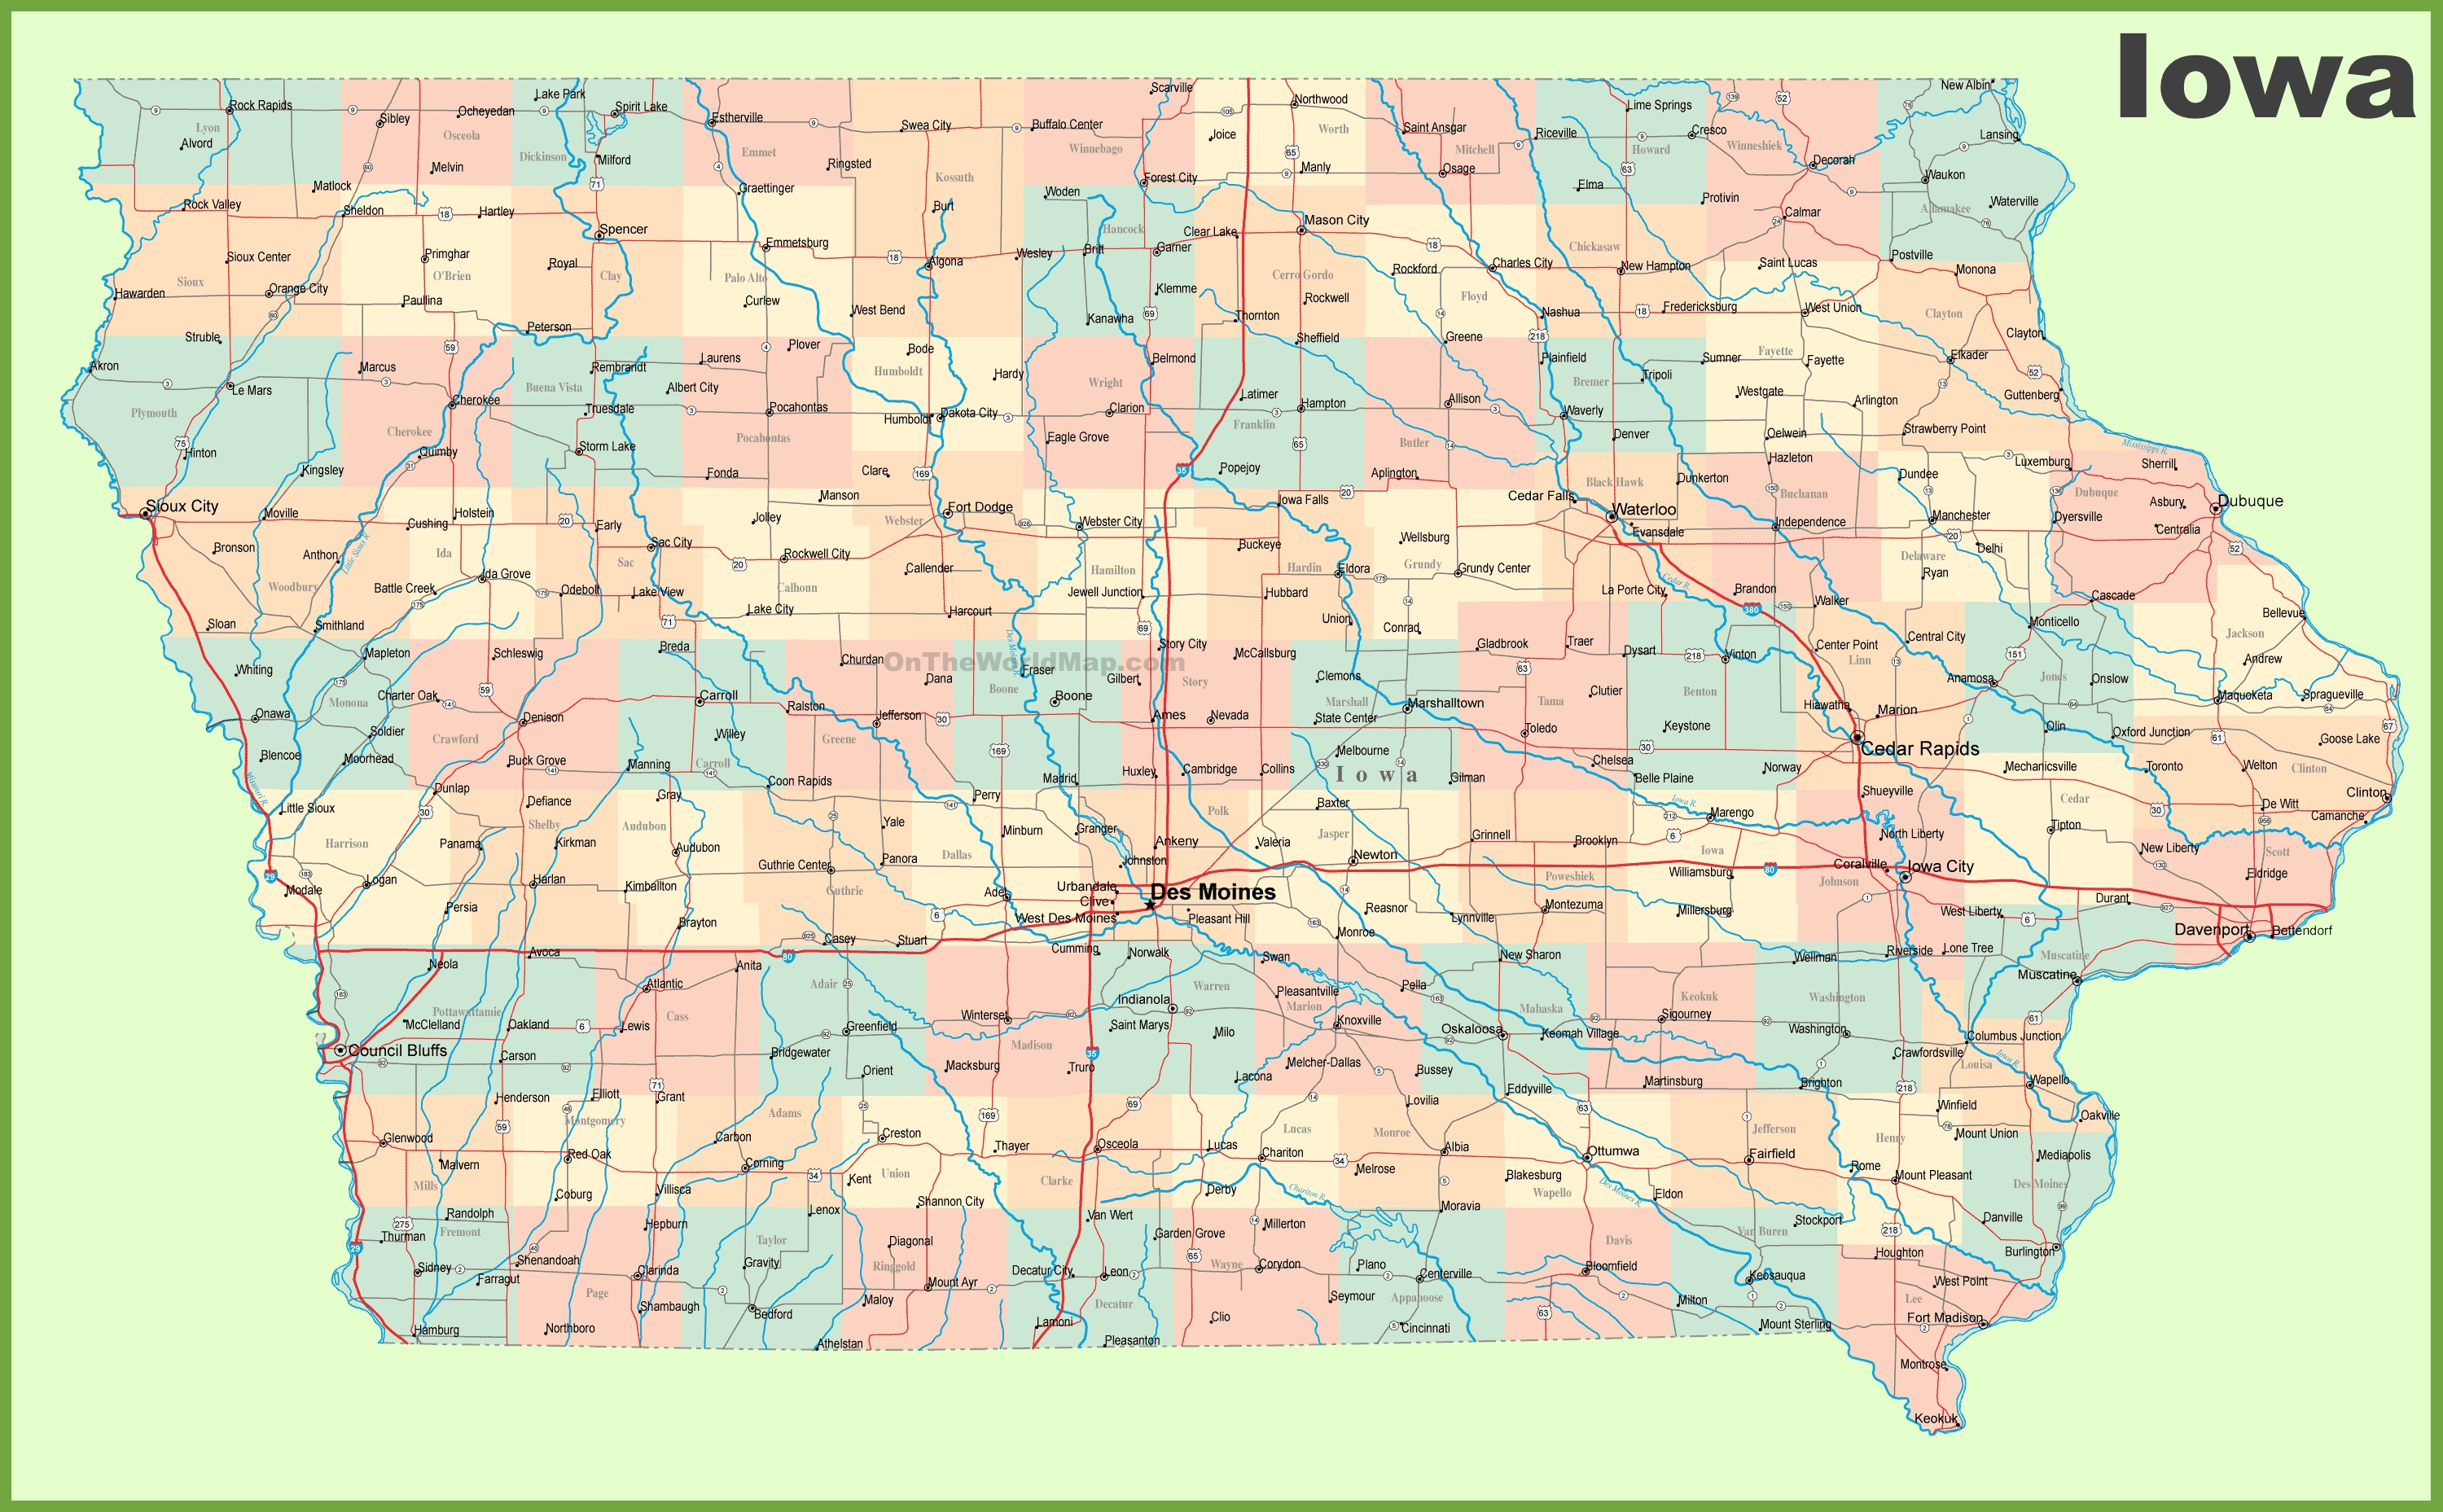 Iowa Map Usa Large detailed map of Iowa with cities and towns